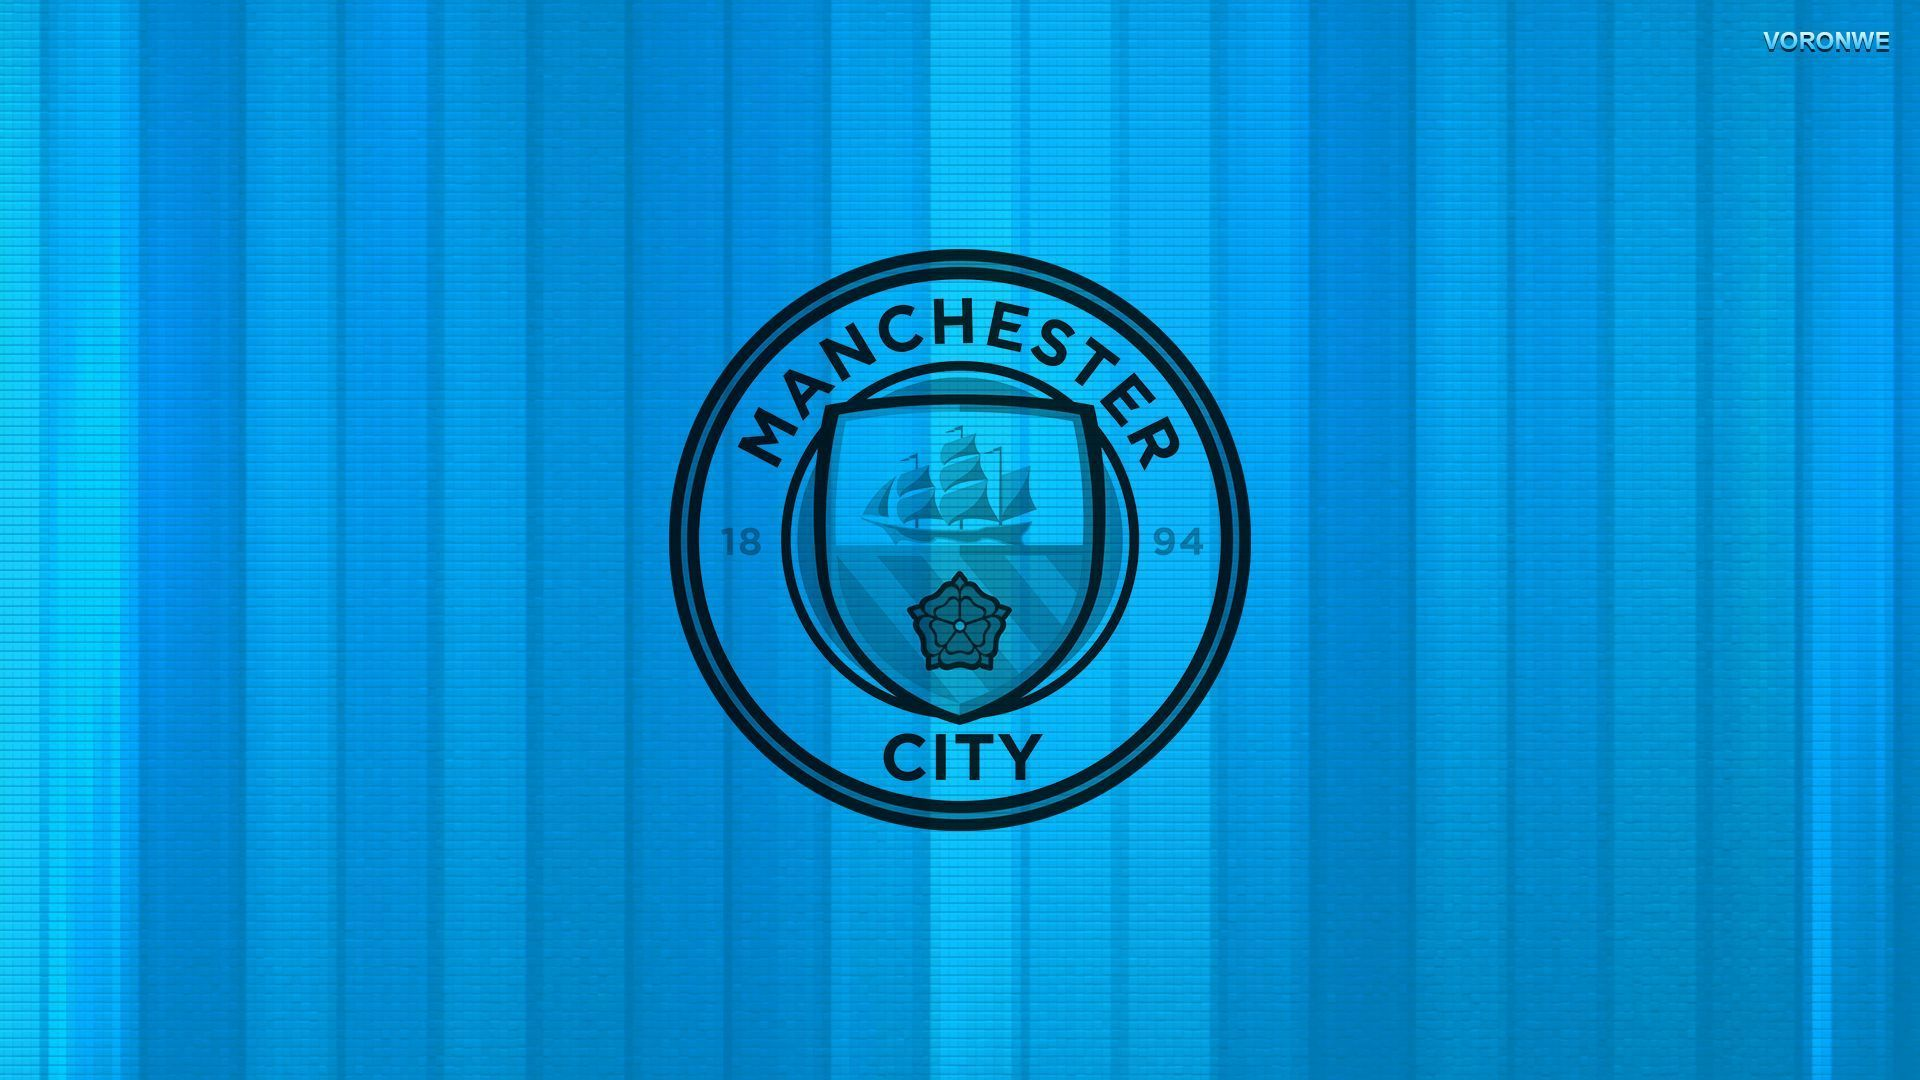 Manchester City Fc Wallpapers On Wallpaperdog